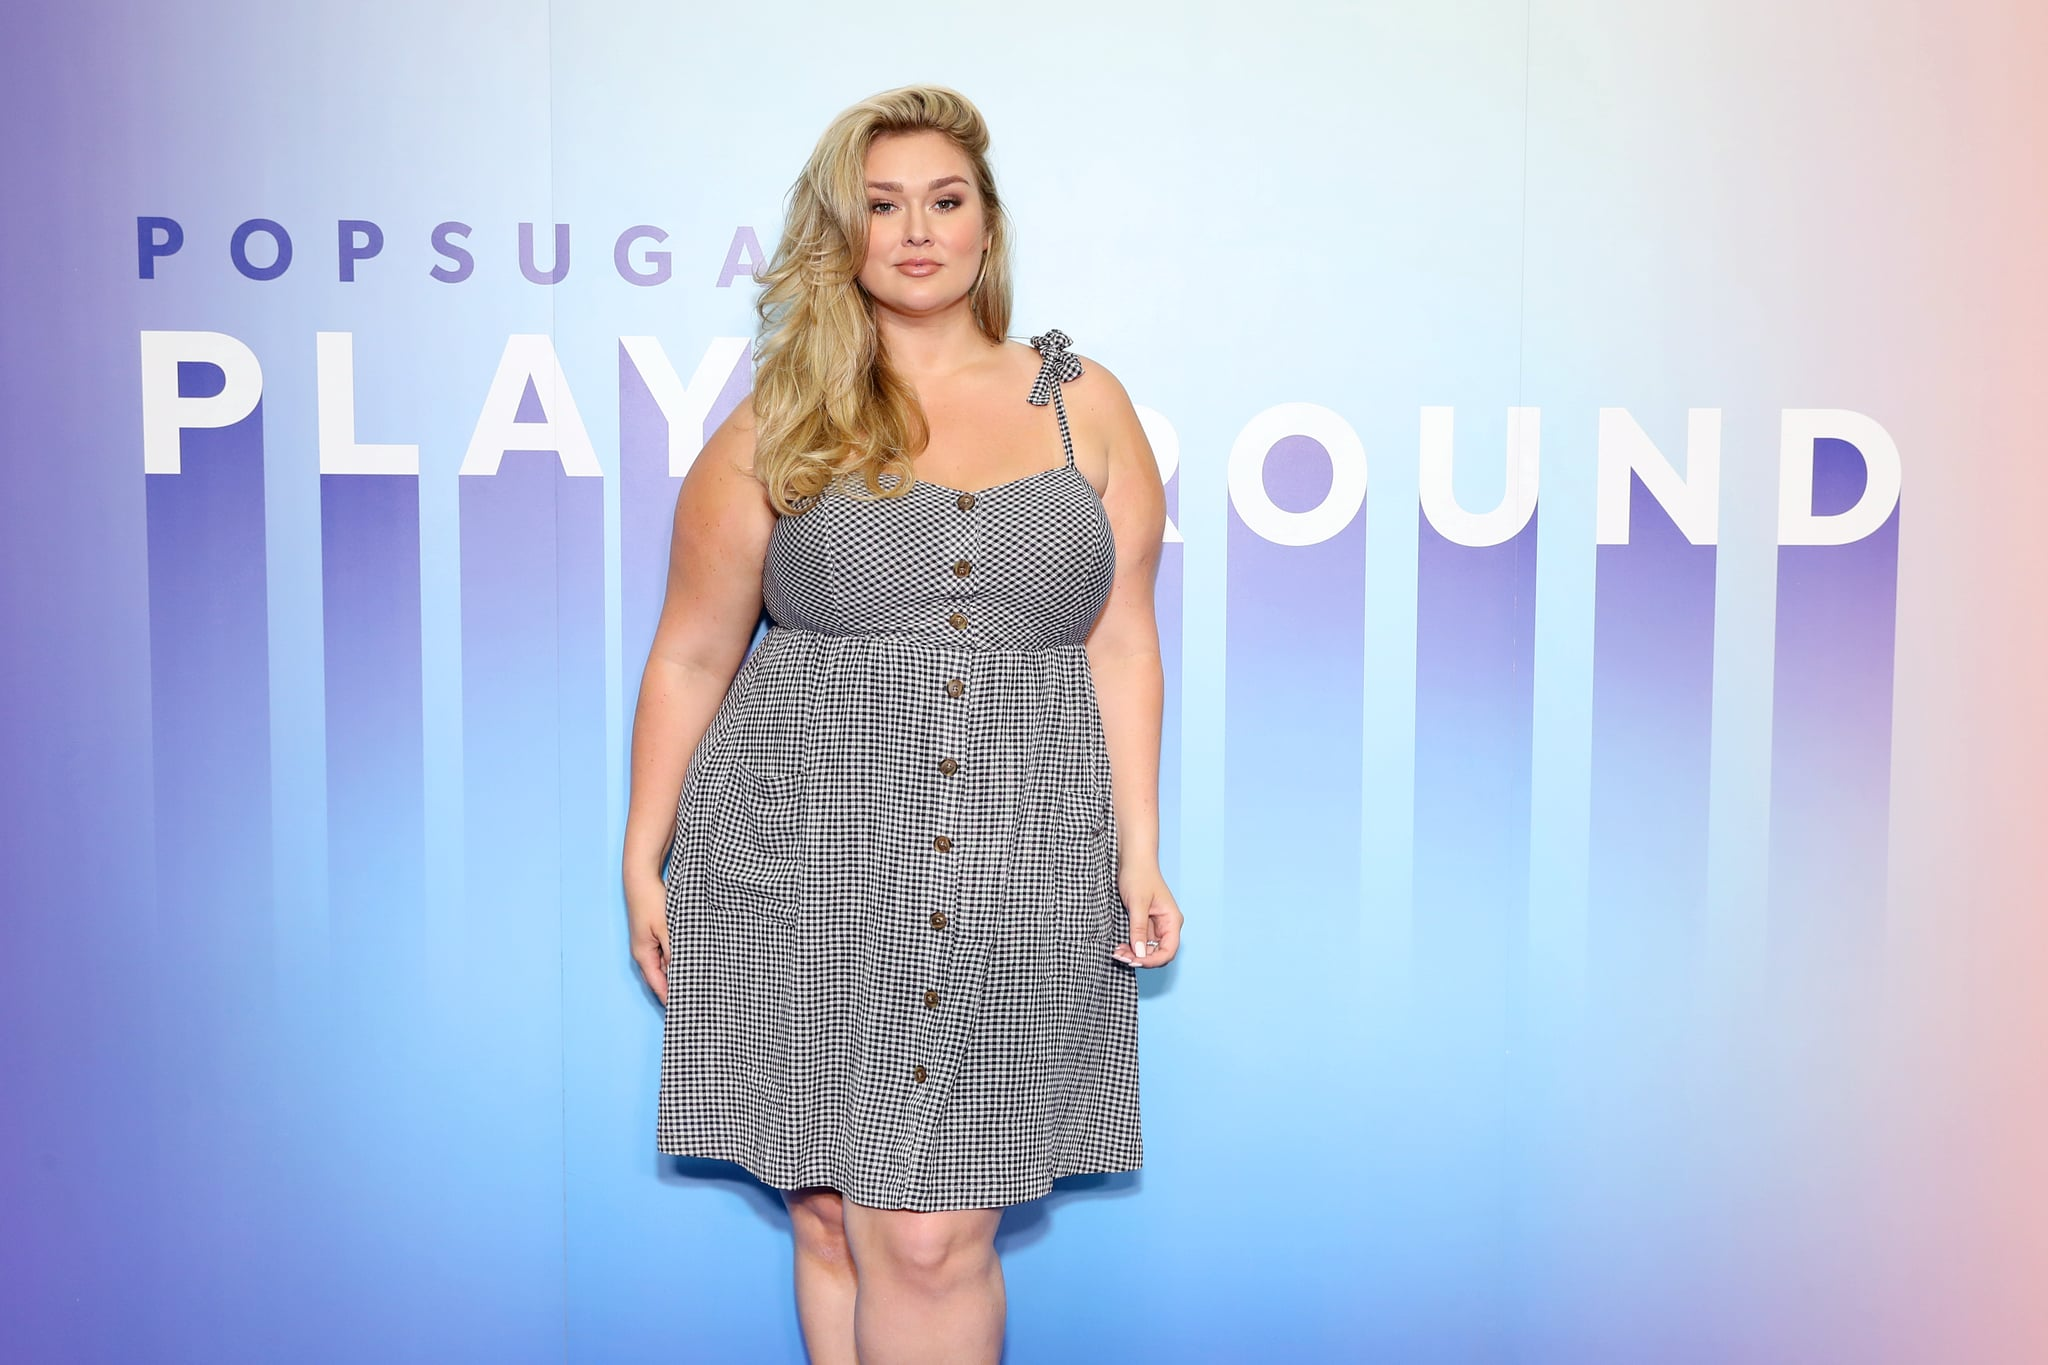 NEW YORK, NEW YORK - JUNE 22: Hunter McGrady attends the POPSUGAR Play/ground at Pier 94 on June 22, 2019 in New York City. (Photo by Cindy Ord/Getty Images for POPSUGAR and Reed Exhibitions )